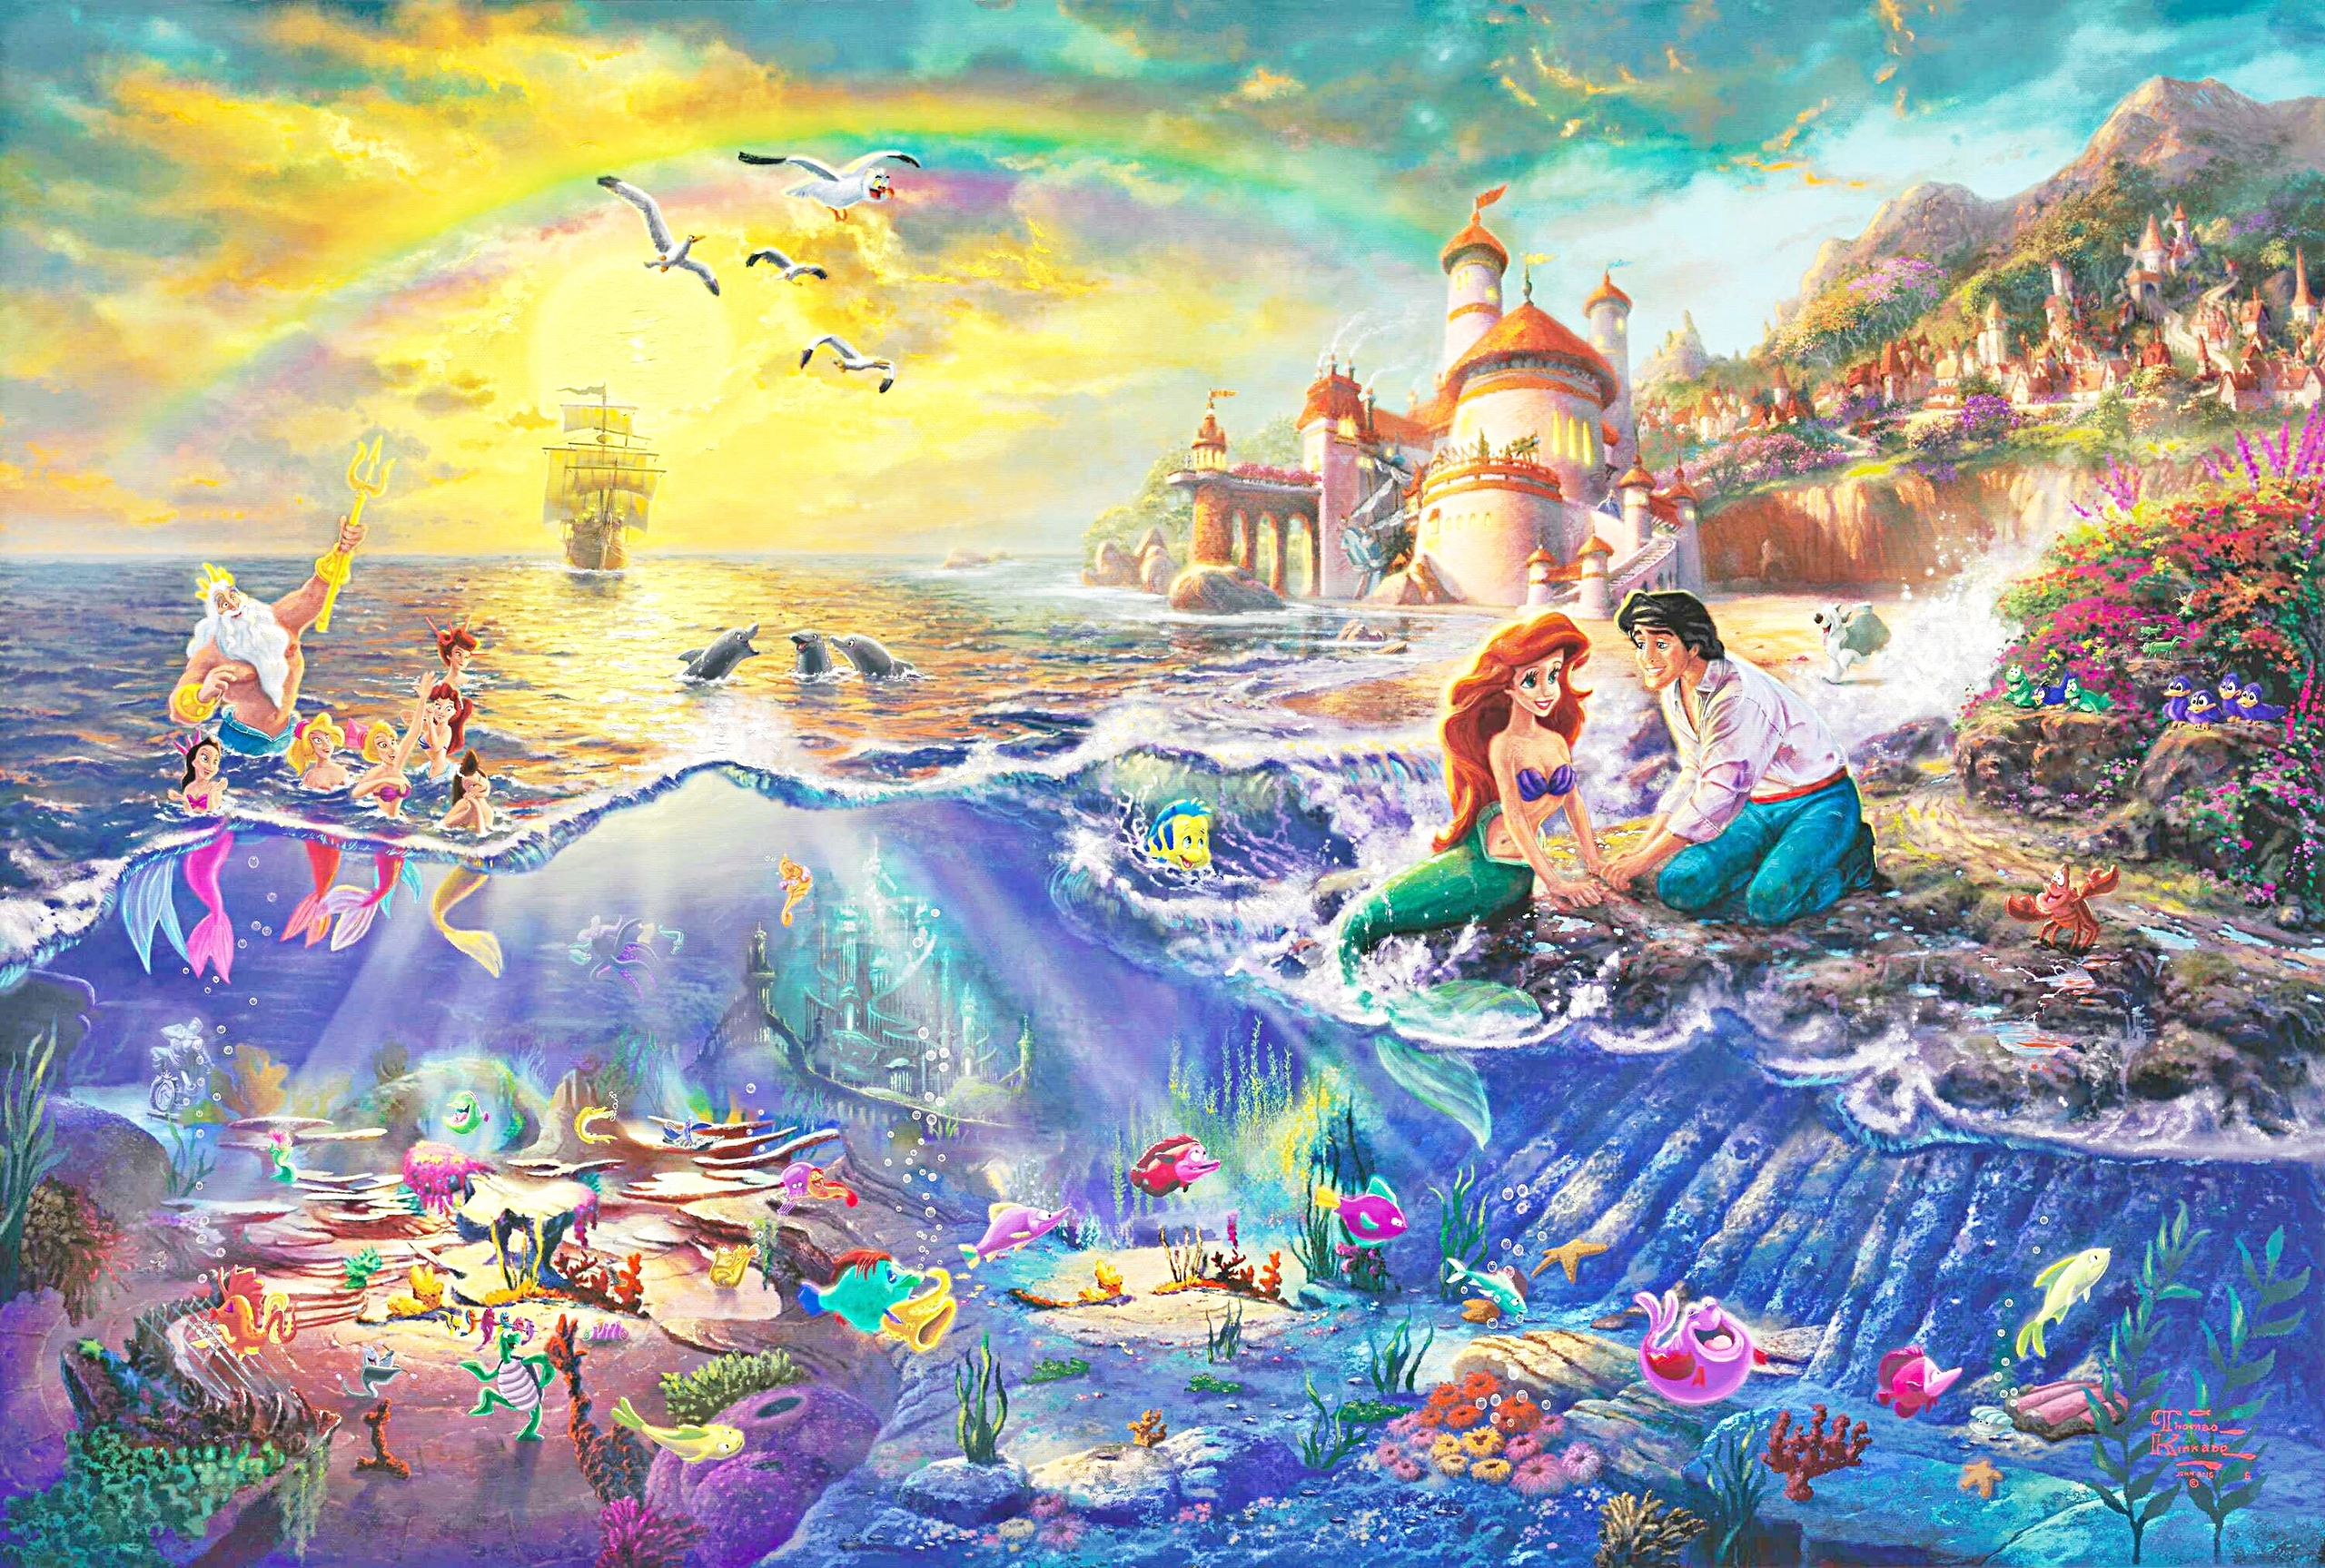 The Little Mermaid Thomas Kinkade WikiArtorg